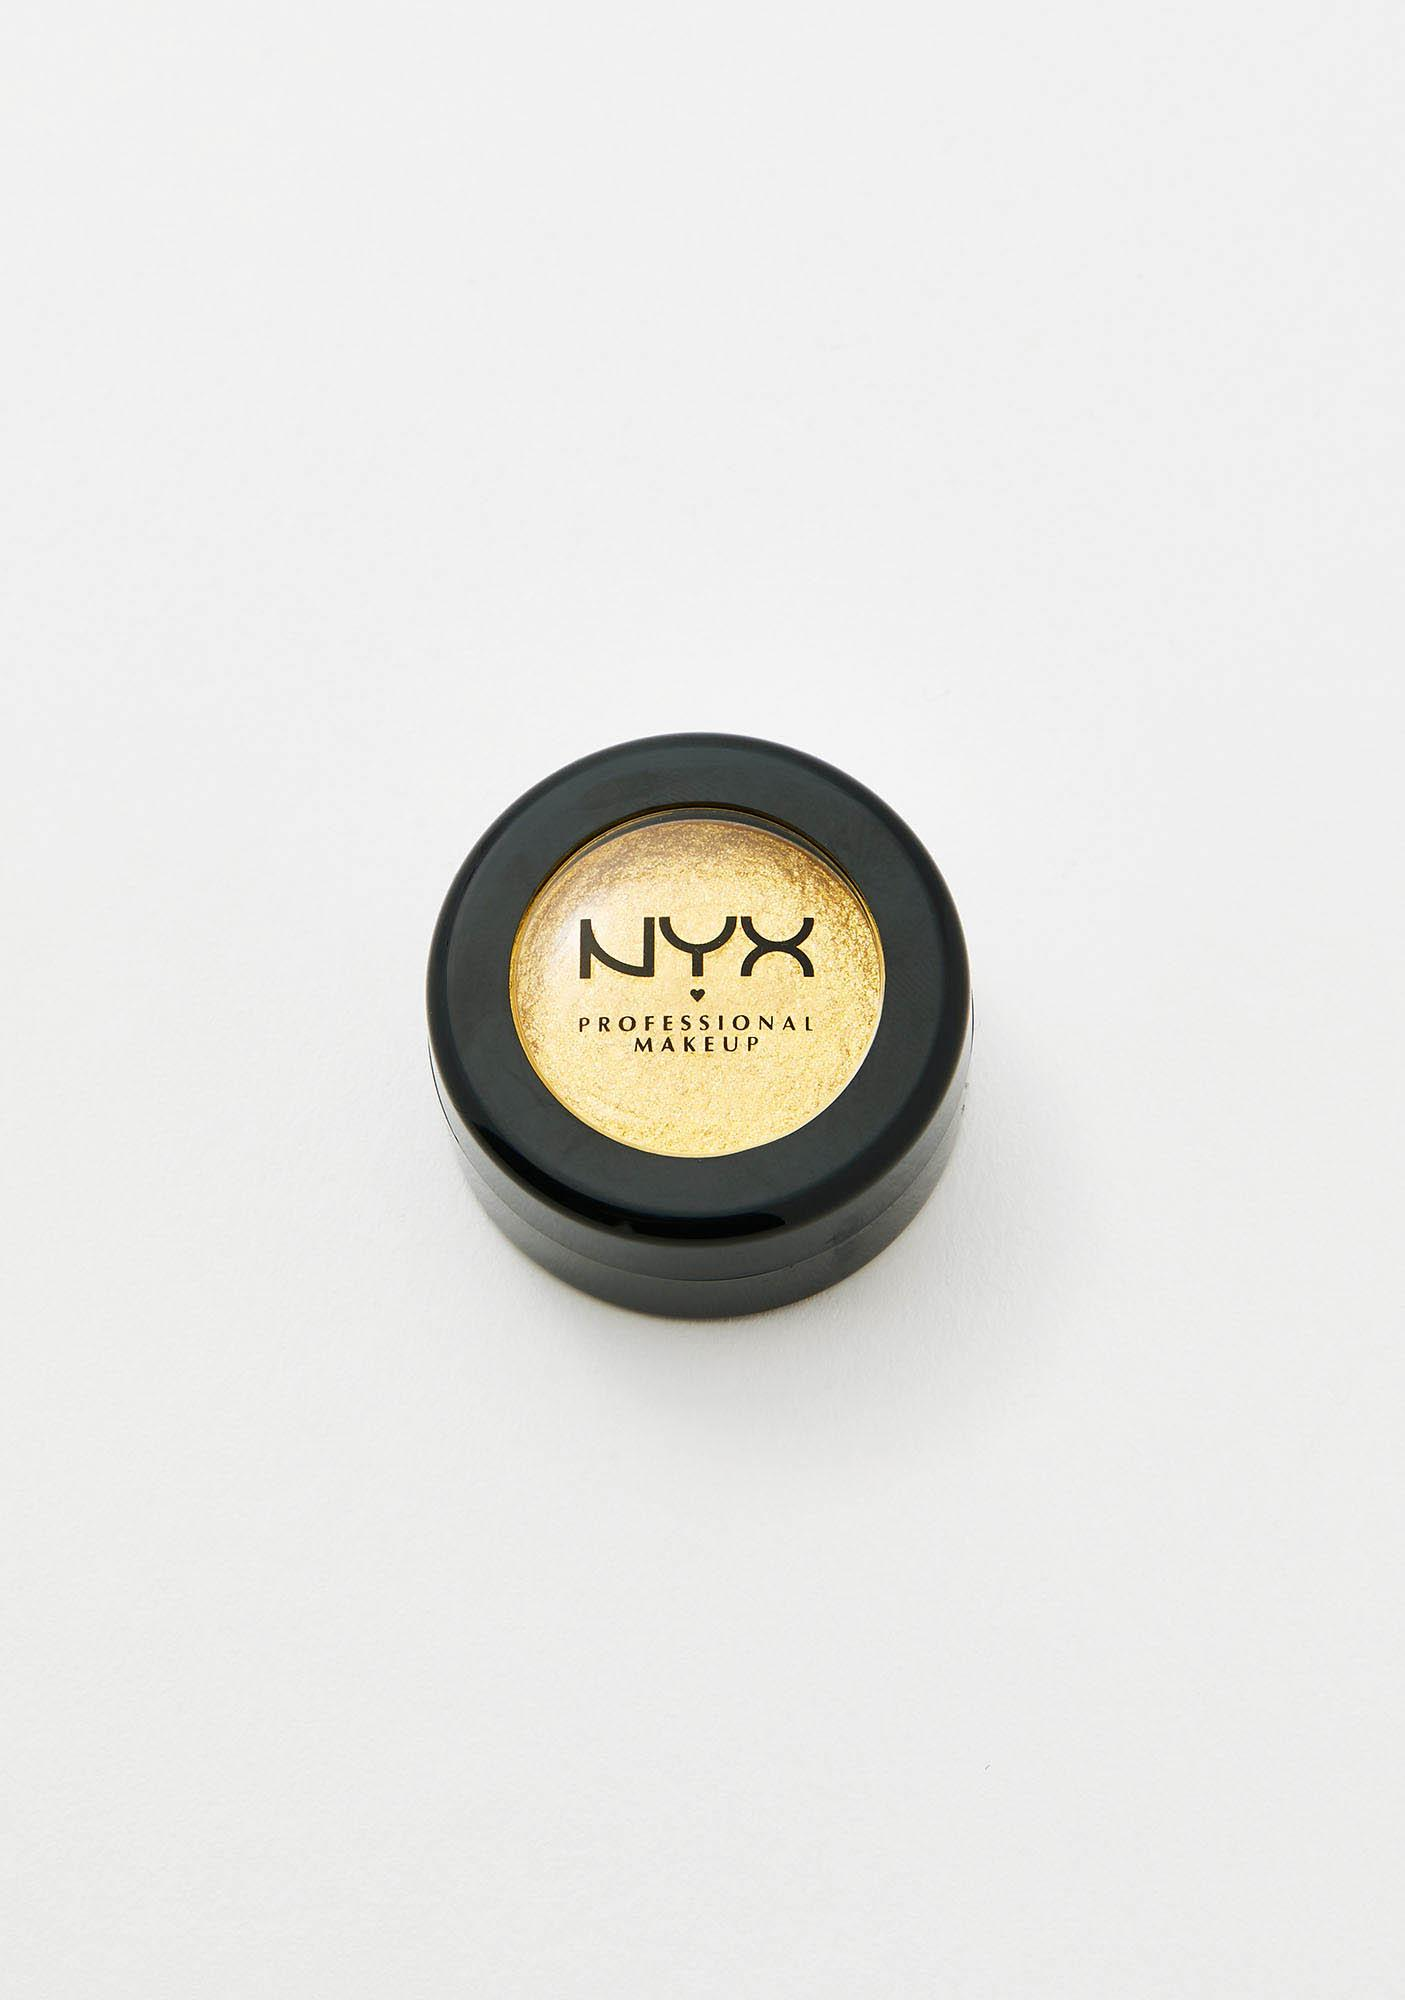 NYX Professional Makeup Steal Your Man Foil Play Cream Eyeshadow